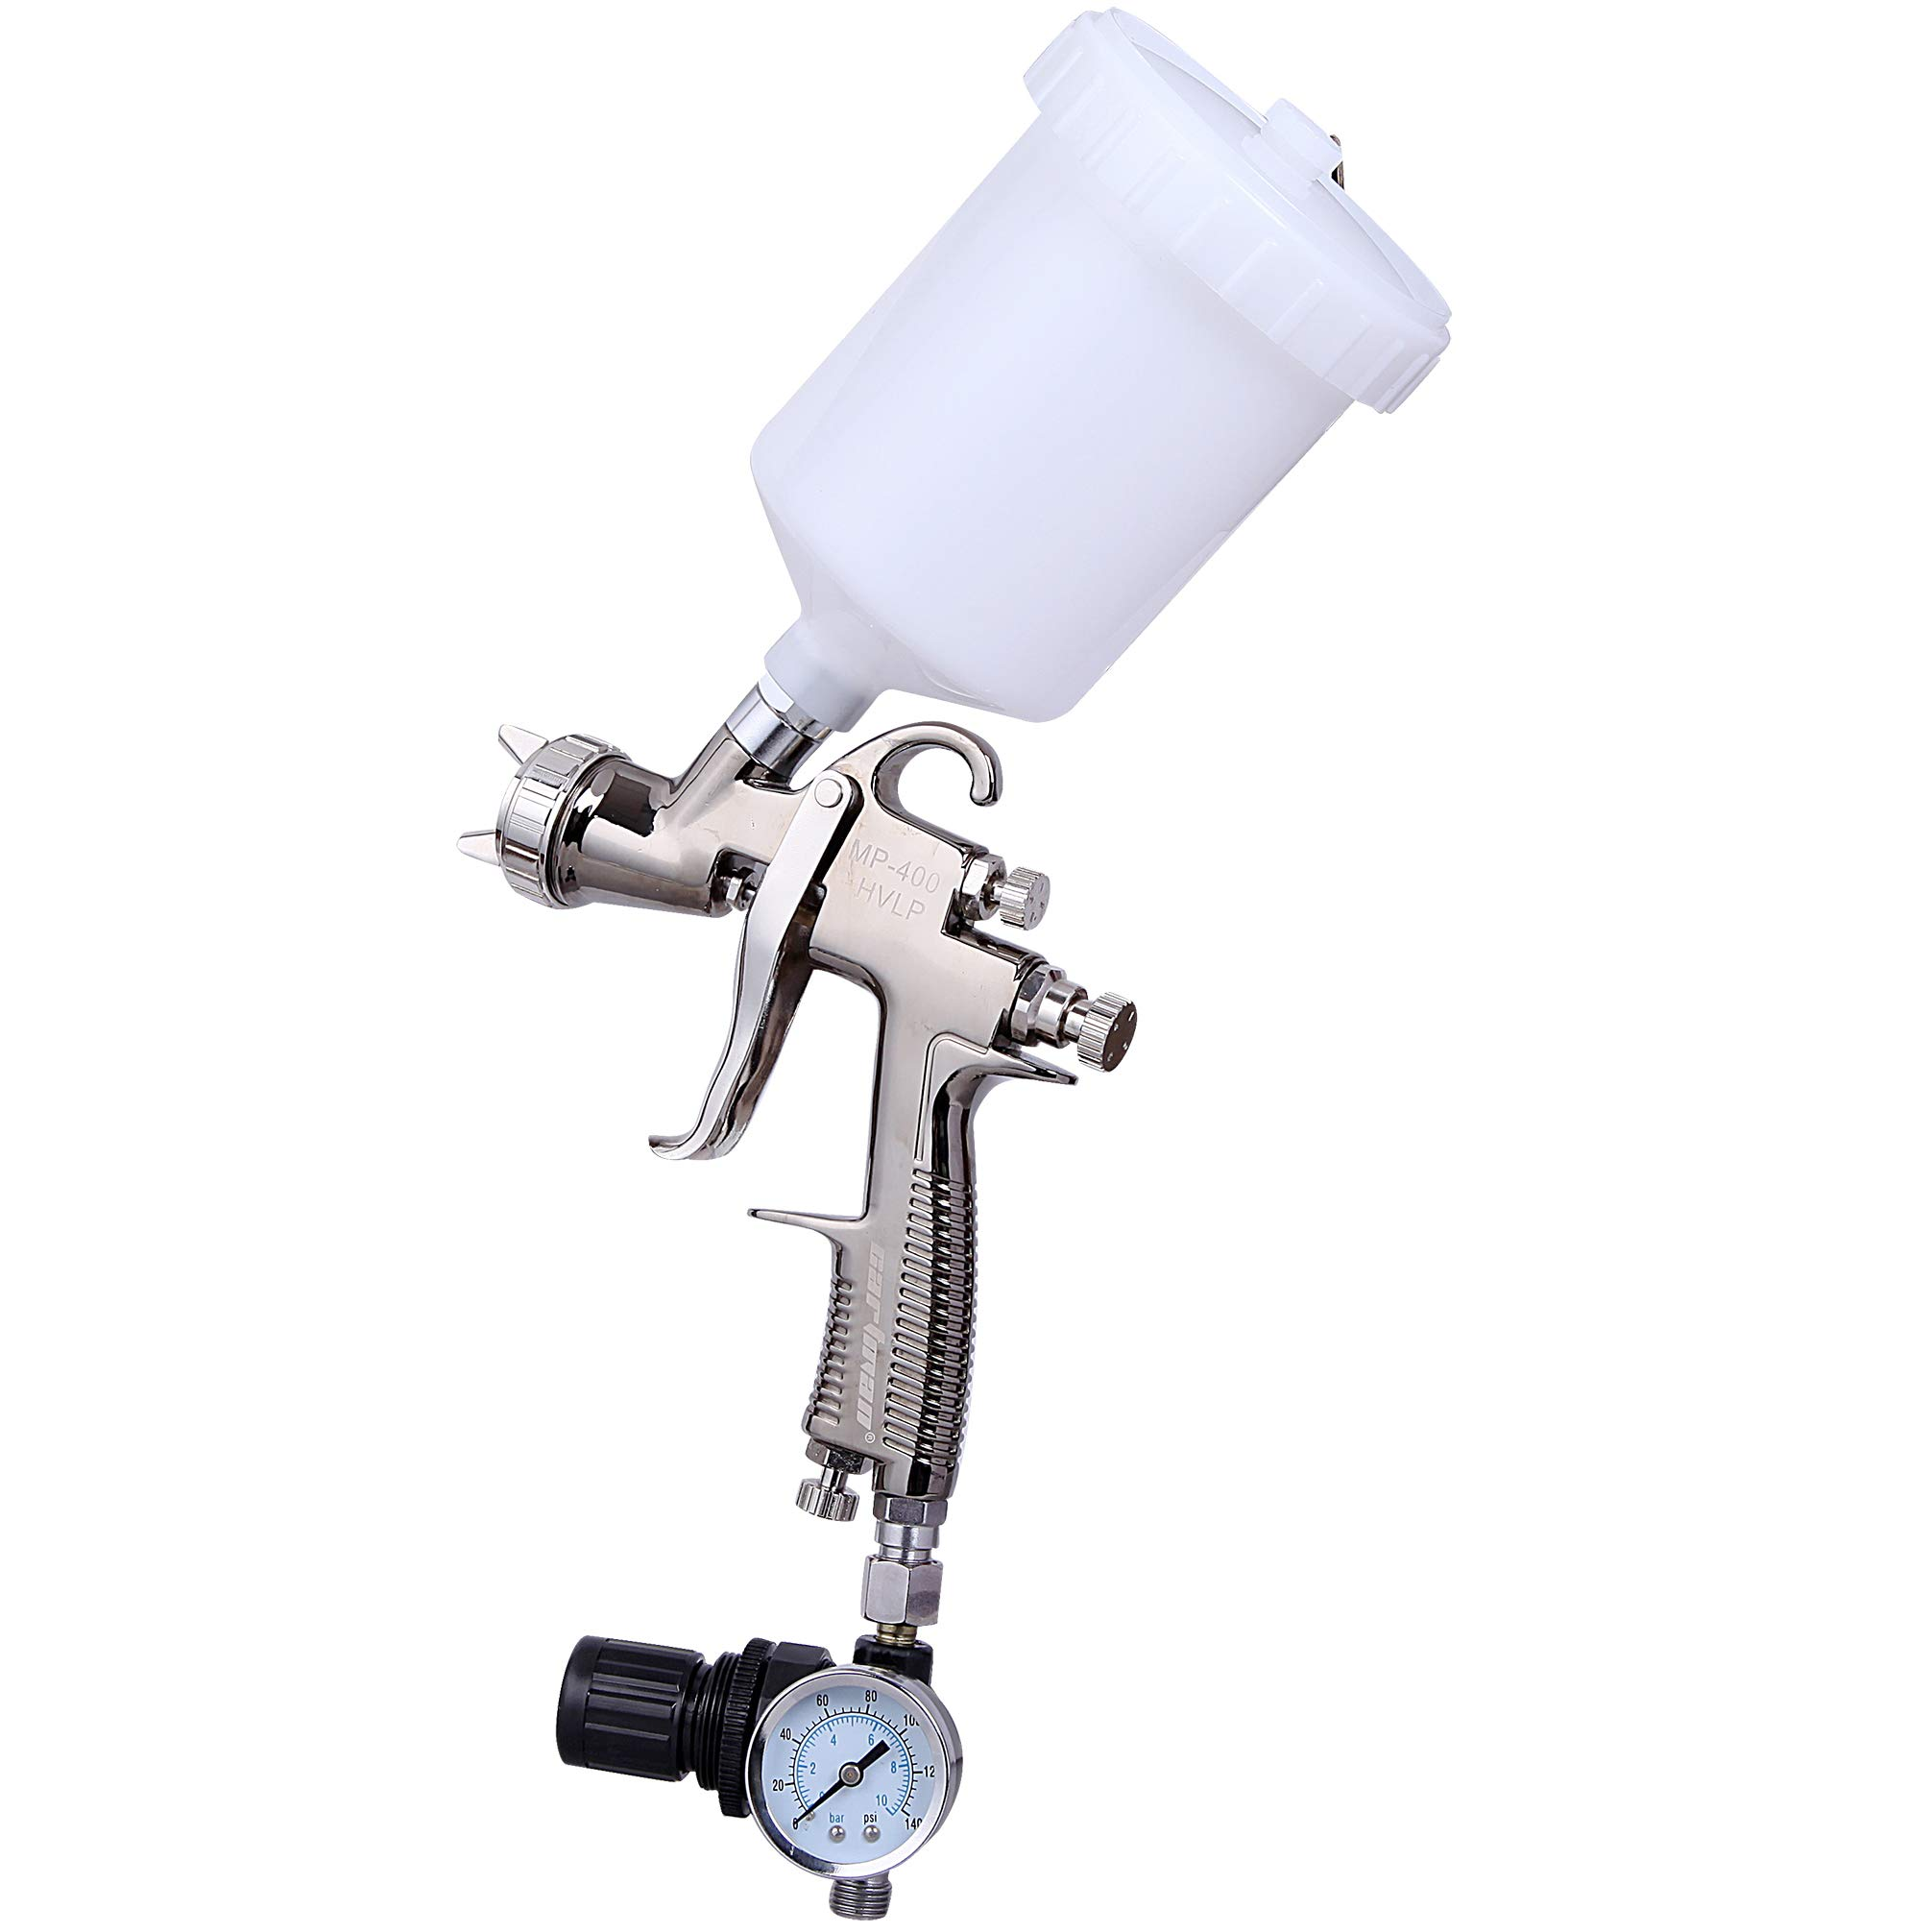 CARTMAN HVLP Gravity Feed Air Spray Gun 20.2 oz Capacity, 4.0-6.0 CFM (Cubic feet per Minute), Optimal Working Pressure 2bar/29psi, Nozzle Size:1.3mm with Air Regulator